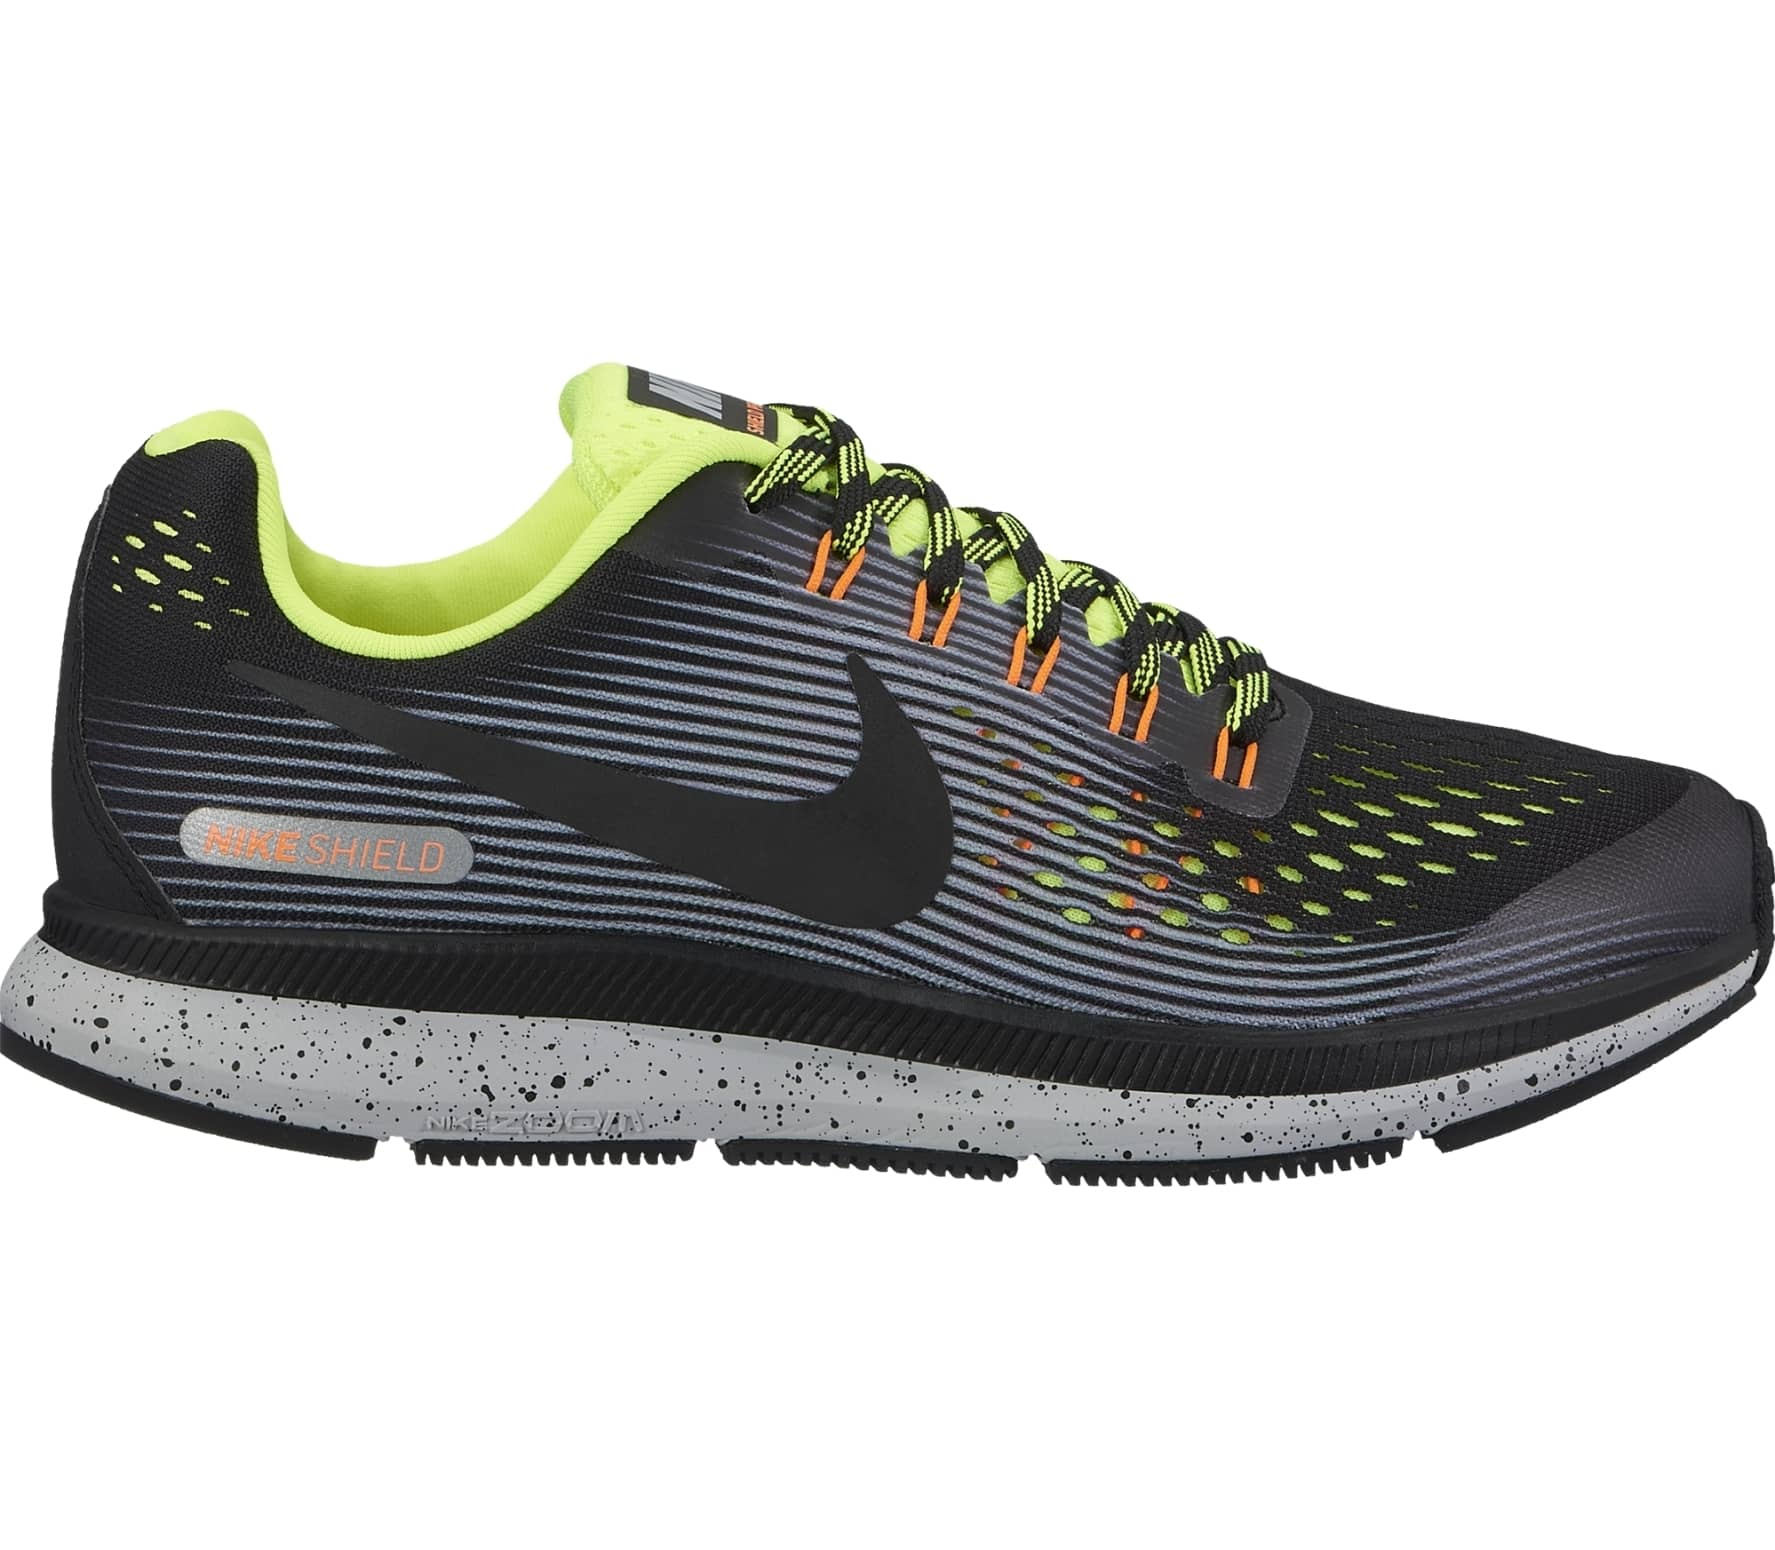 reputable site eeb75 8b0eb Nike - Air Zoom Pegasus 34 Shield (GS) Kinderen ren schoen (zwart